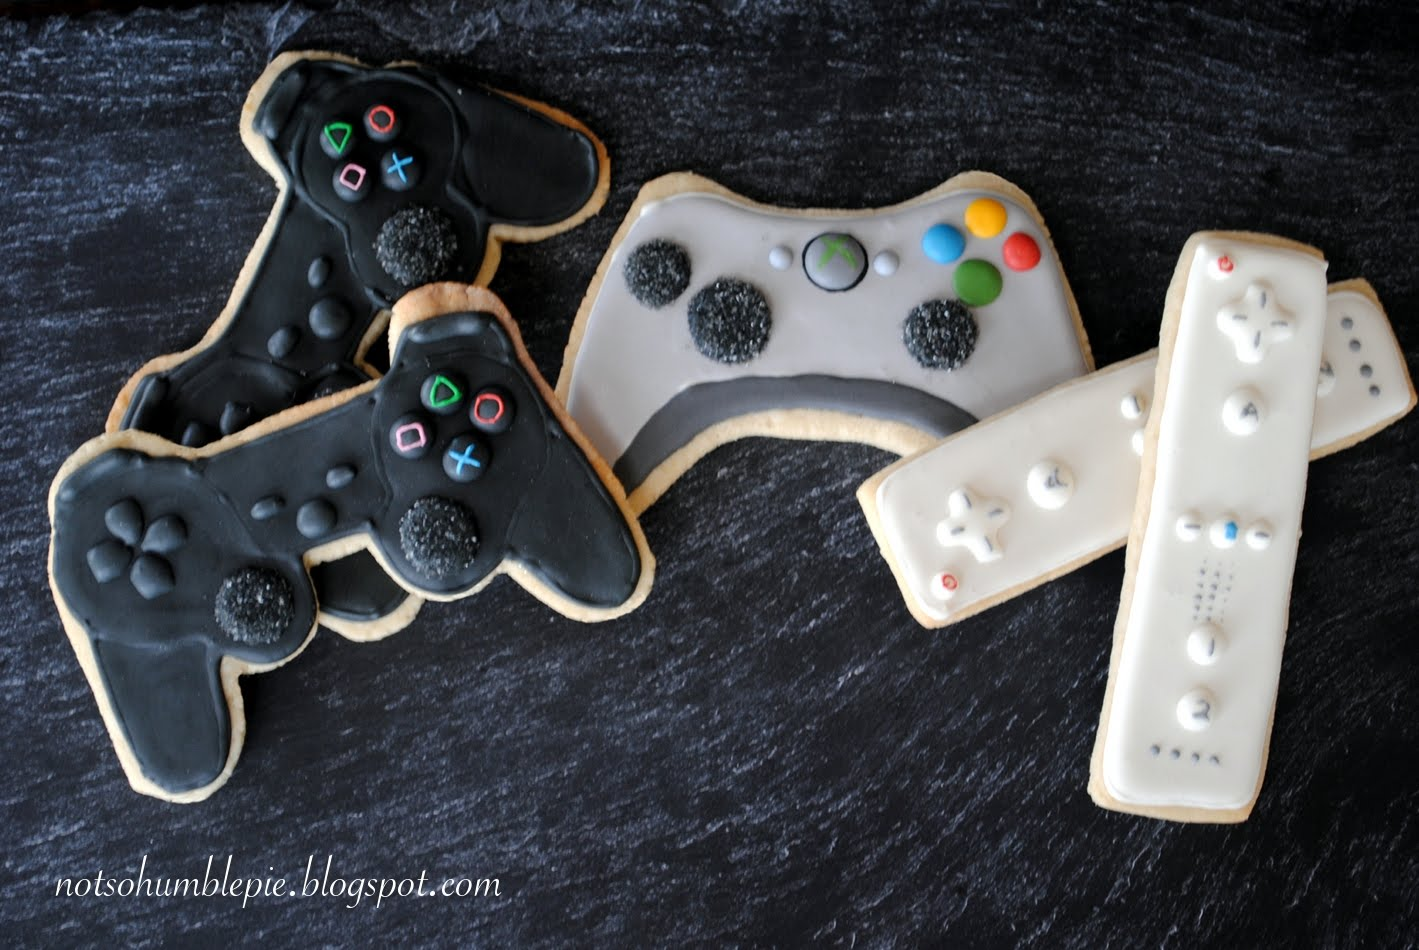 controller cookies xbox ps3 wii